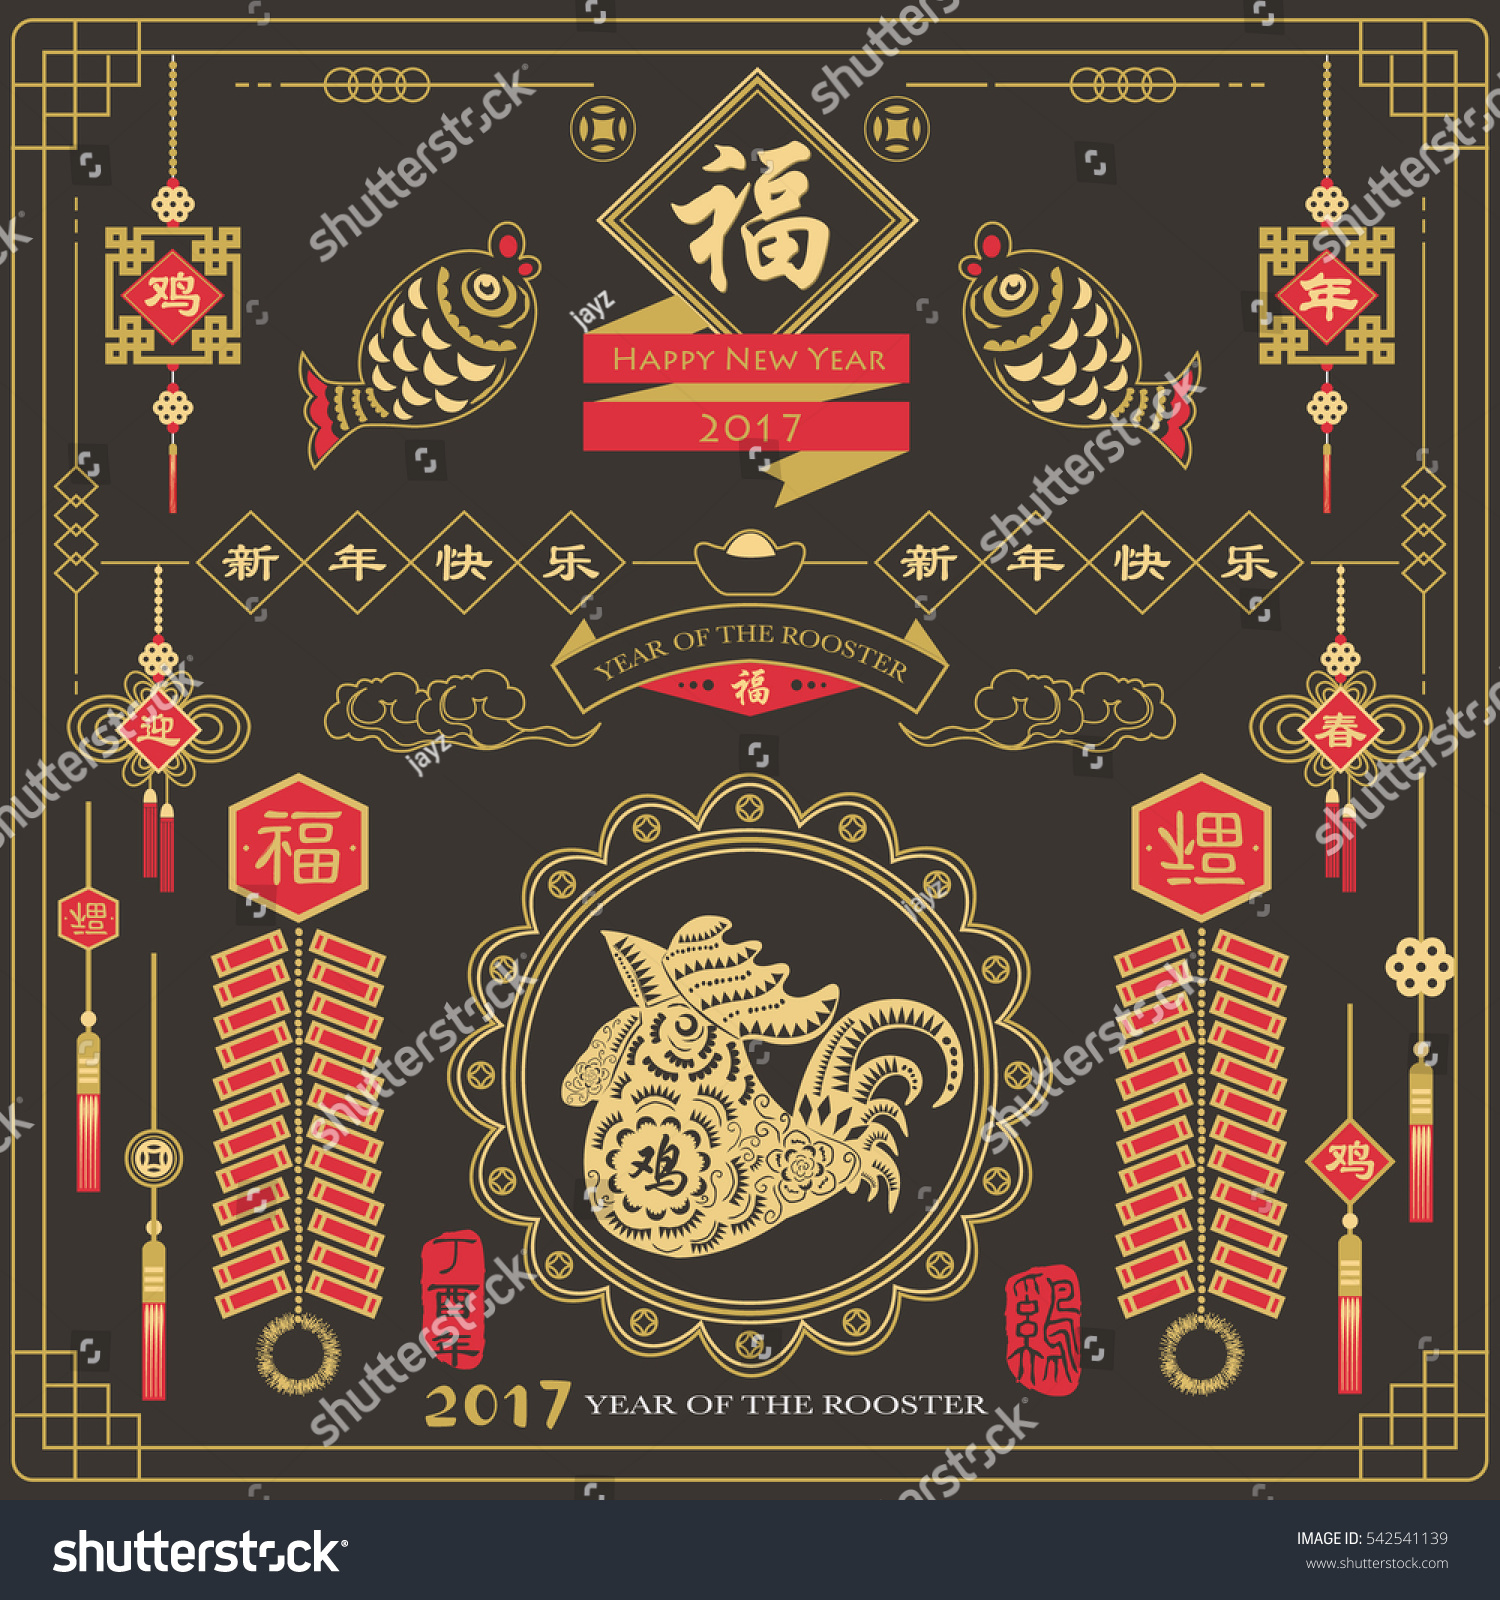 Chinese new year greeting card design stock vector 542541139 chinese new year greeting card design translation of calligraphy main happy new year kristyandbryce Choice Image